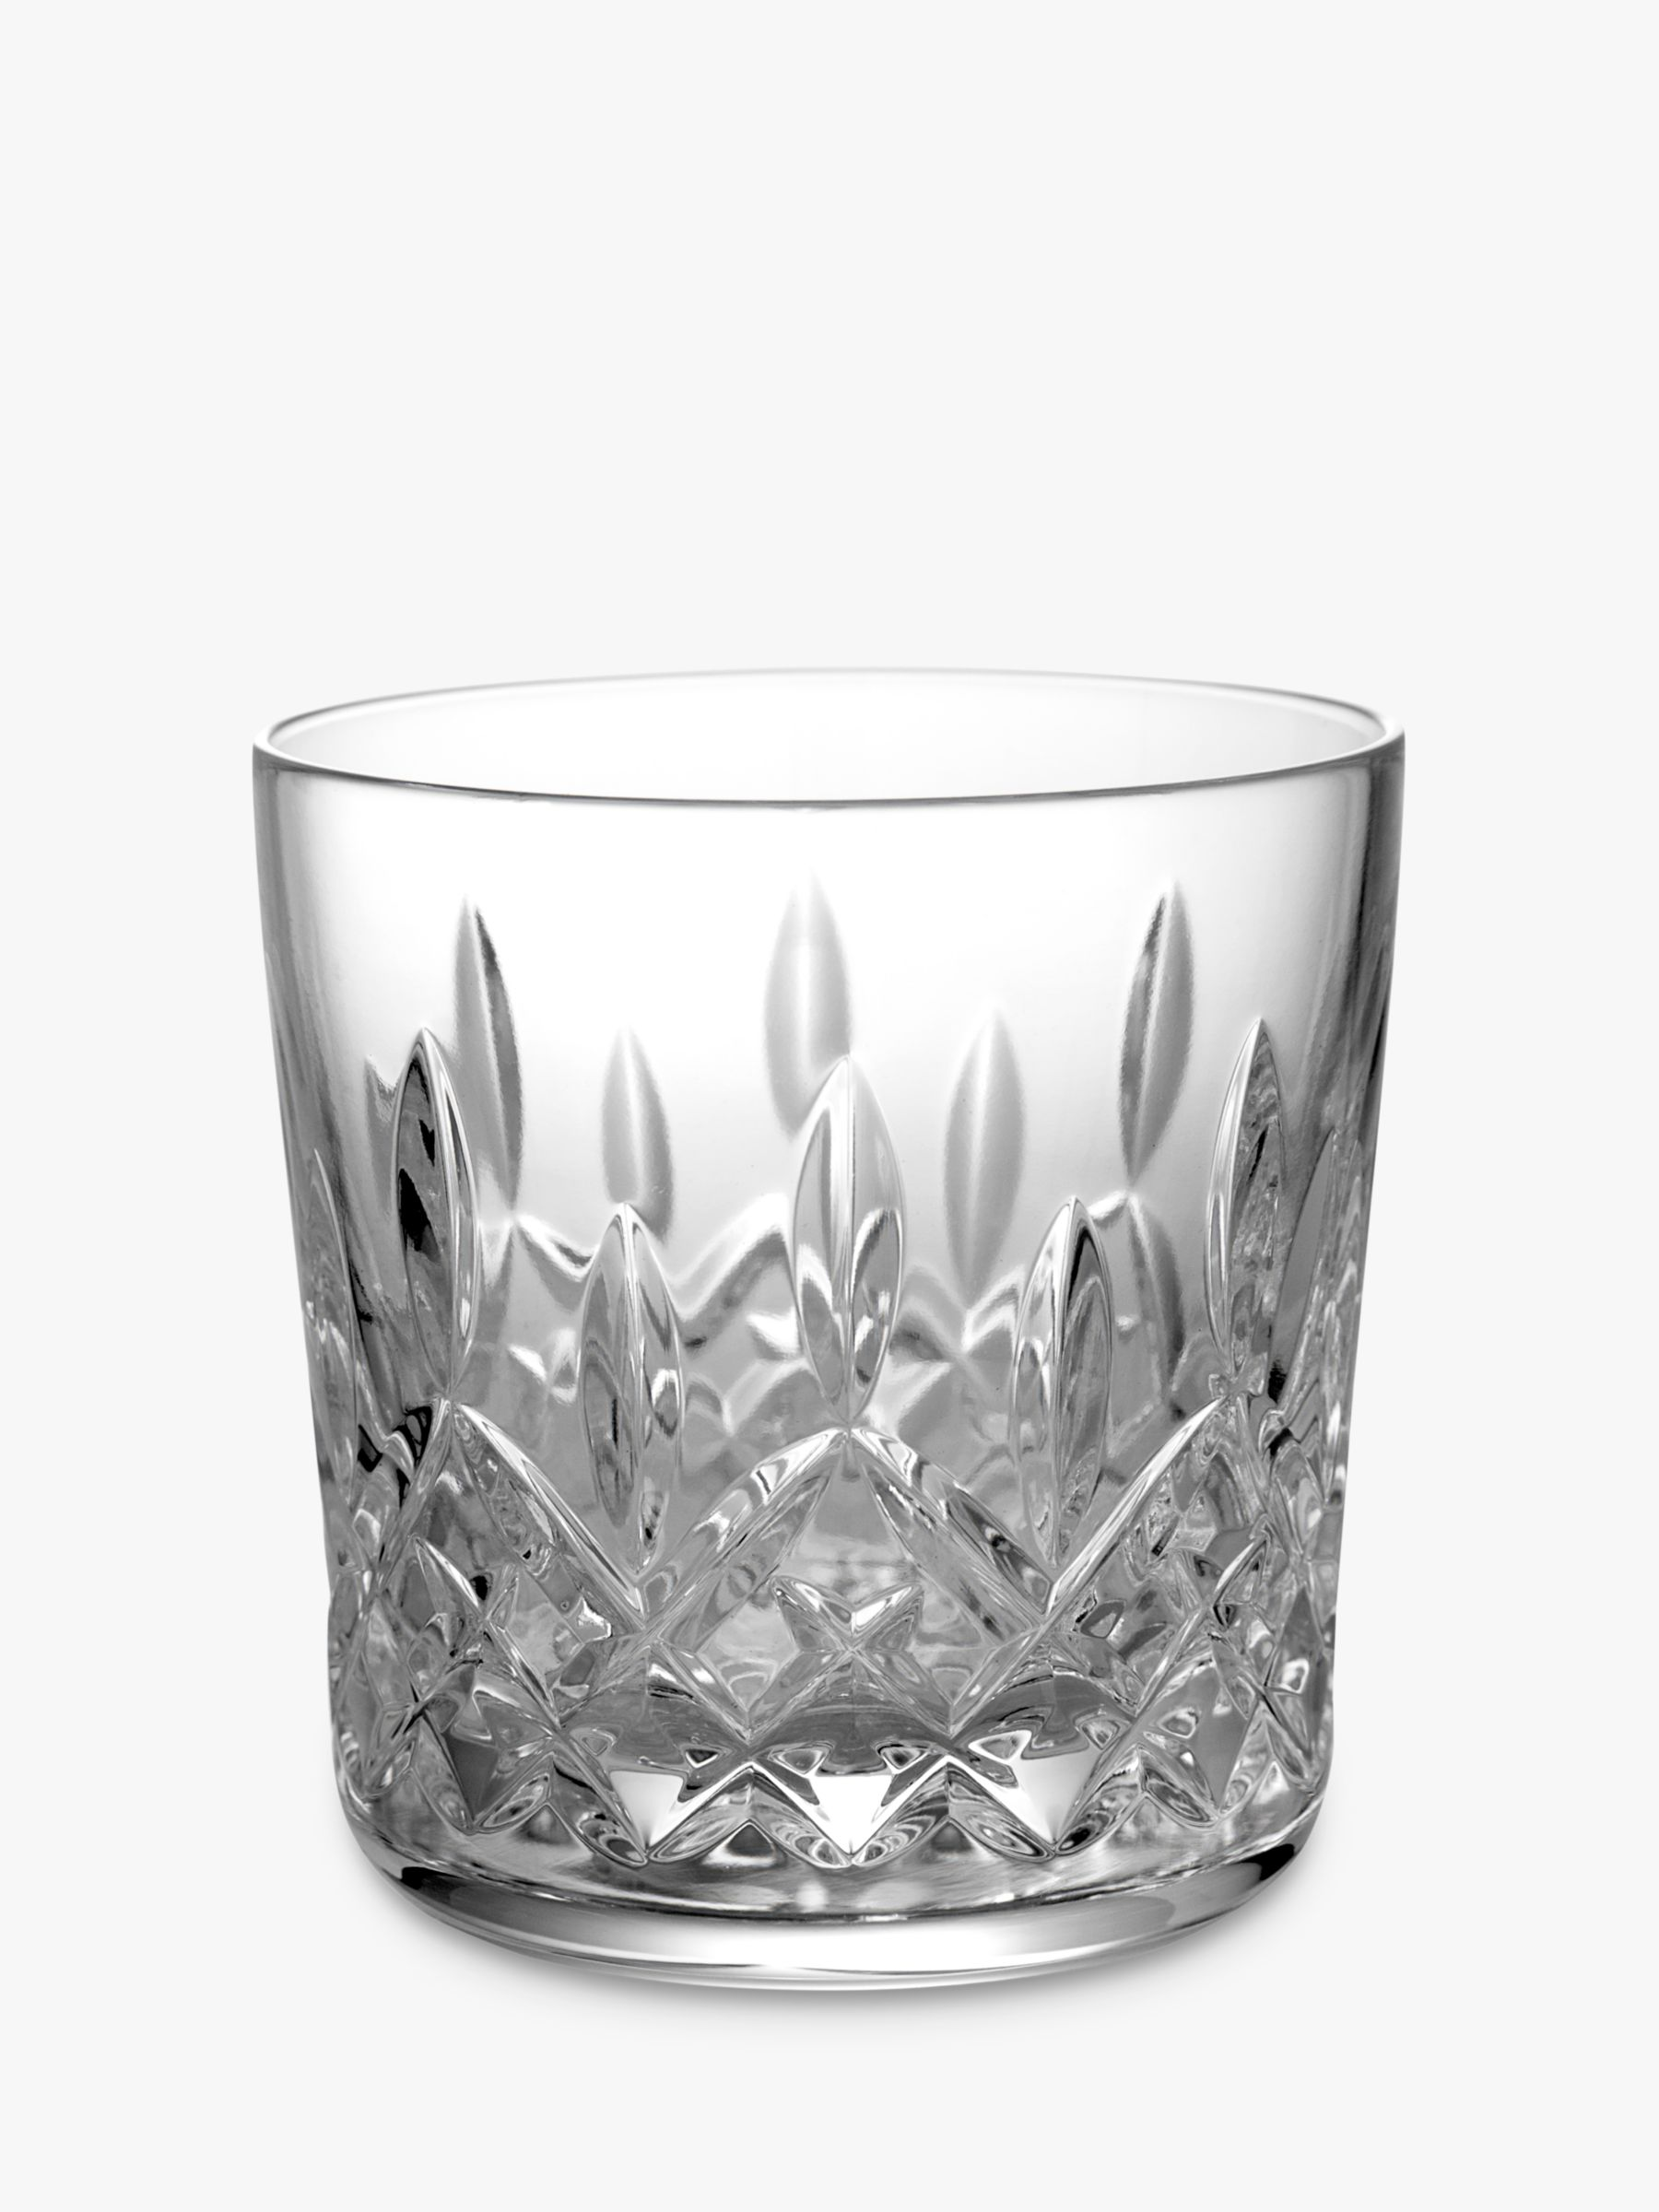 Waterford Waterford Cut Lead Crystal Lismore Tumbler, 250ml, Clear